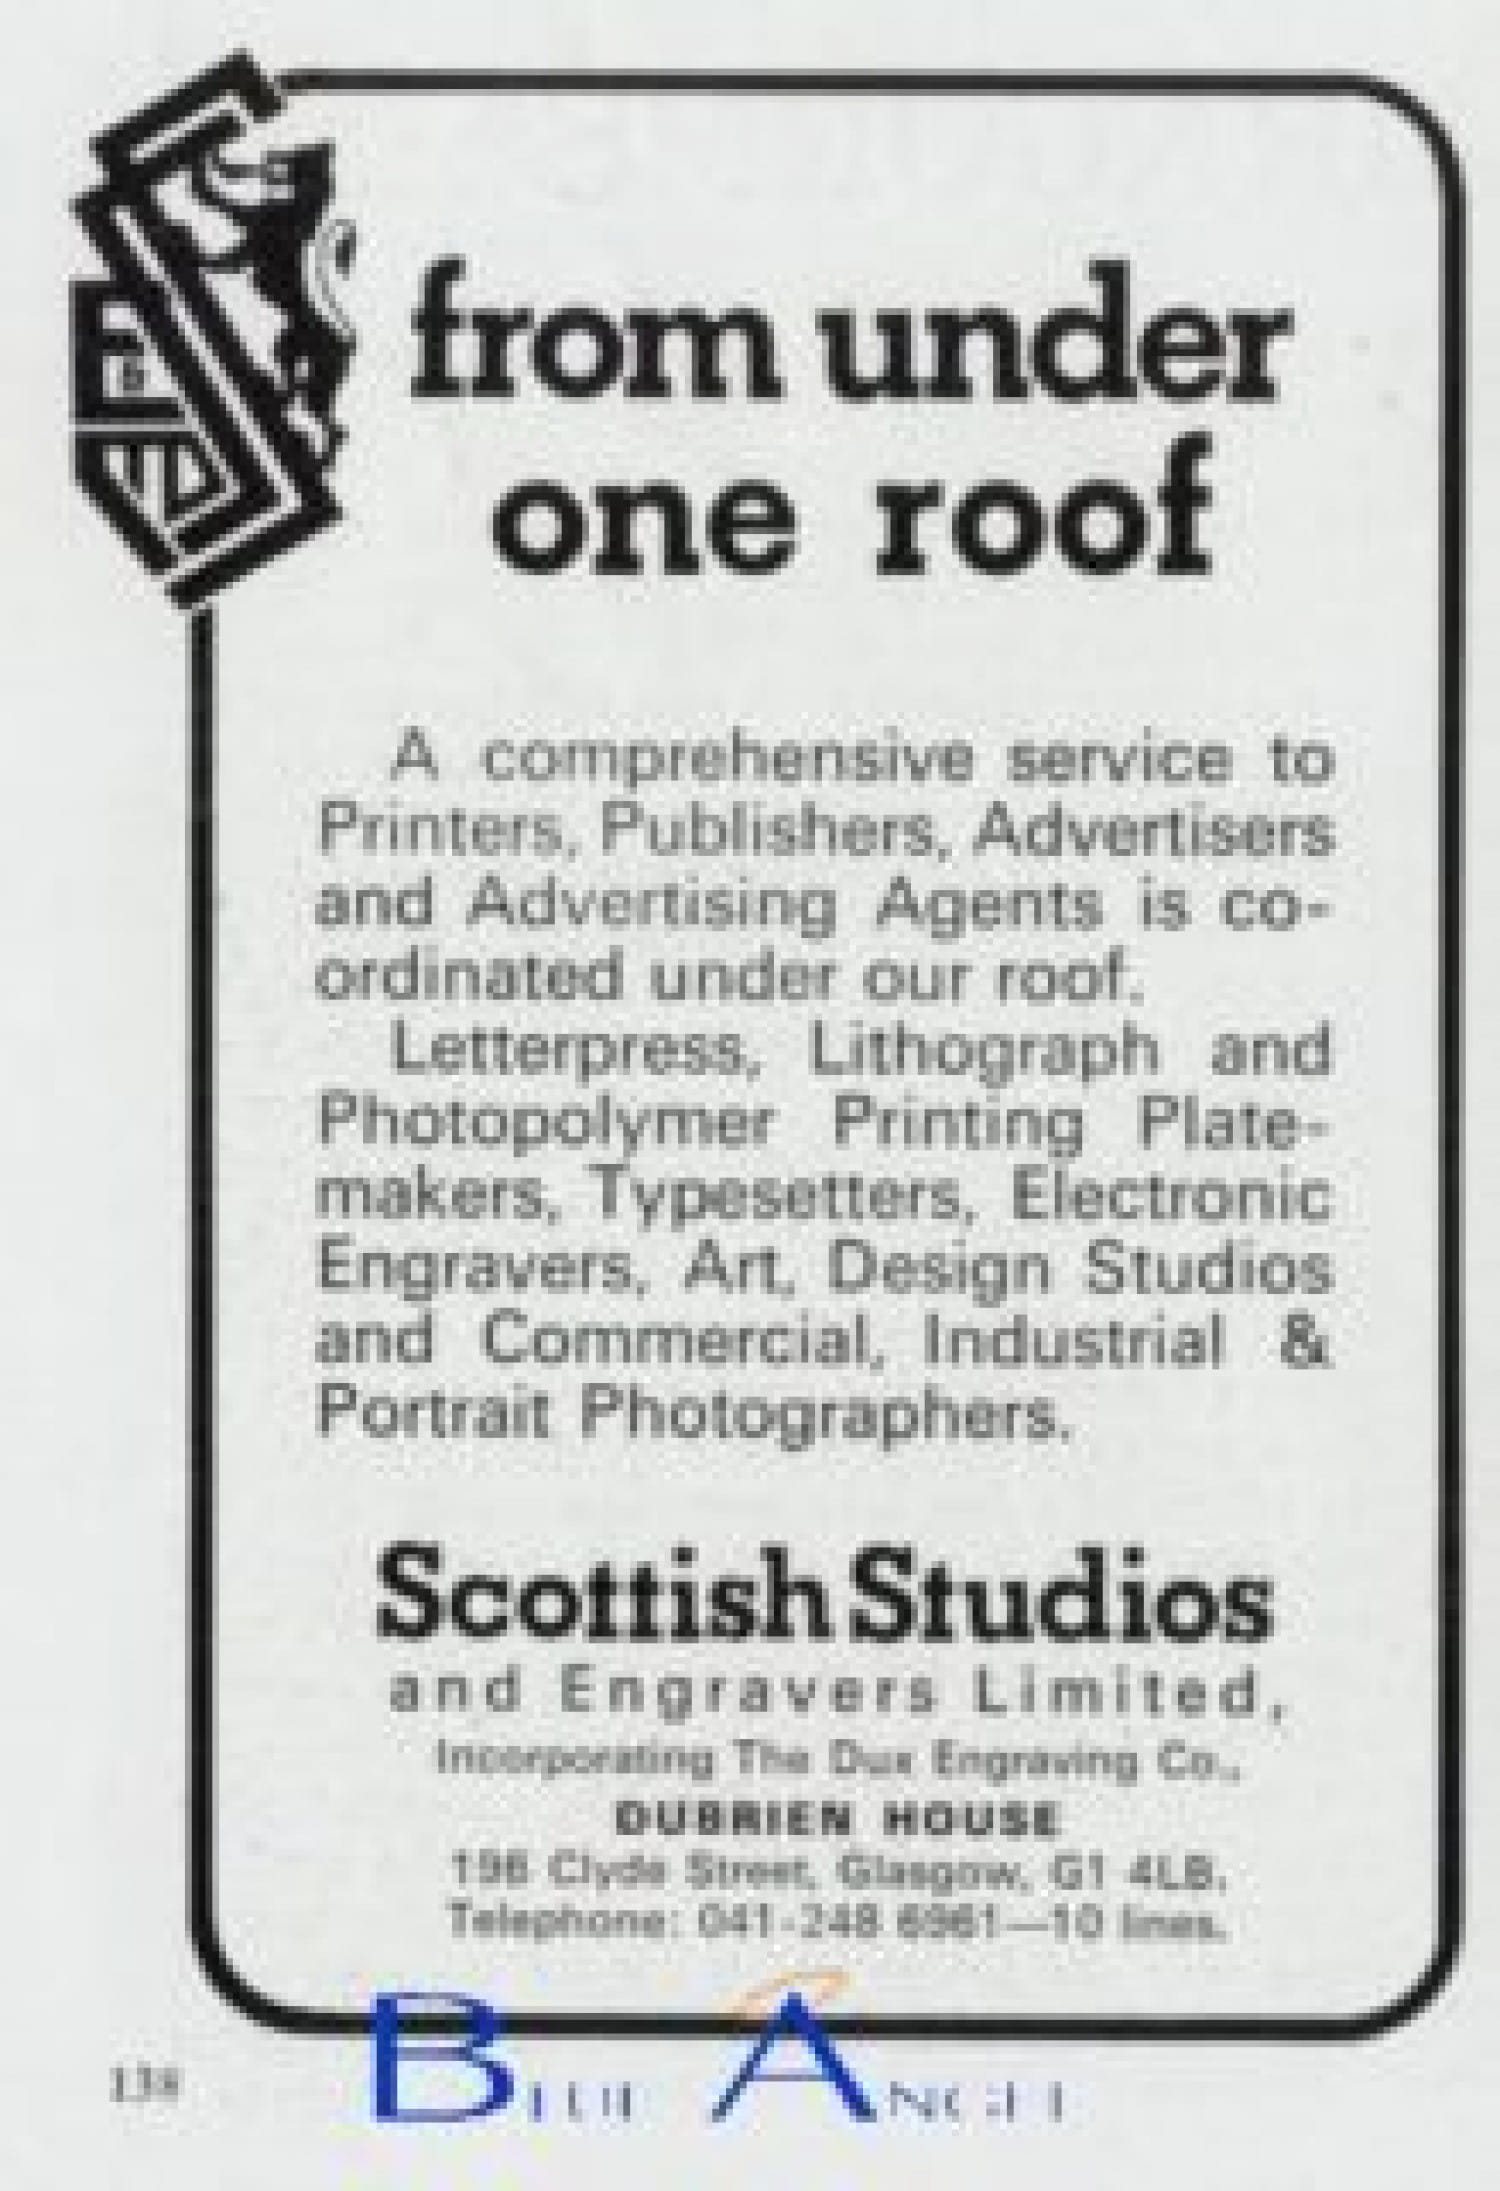 A 1970s advert for the business